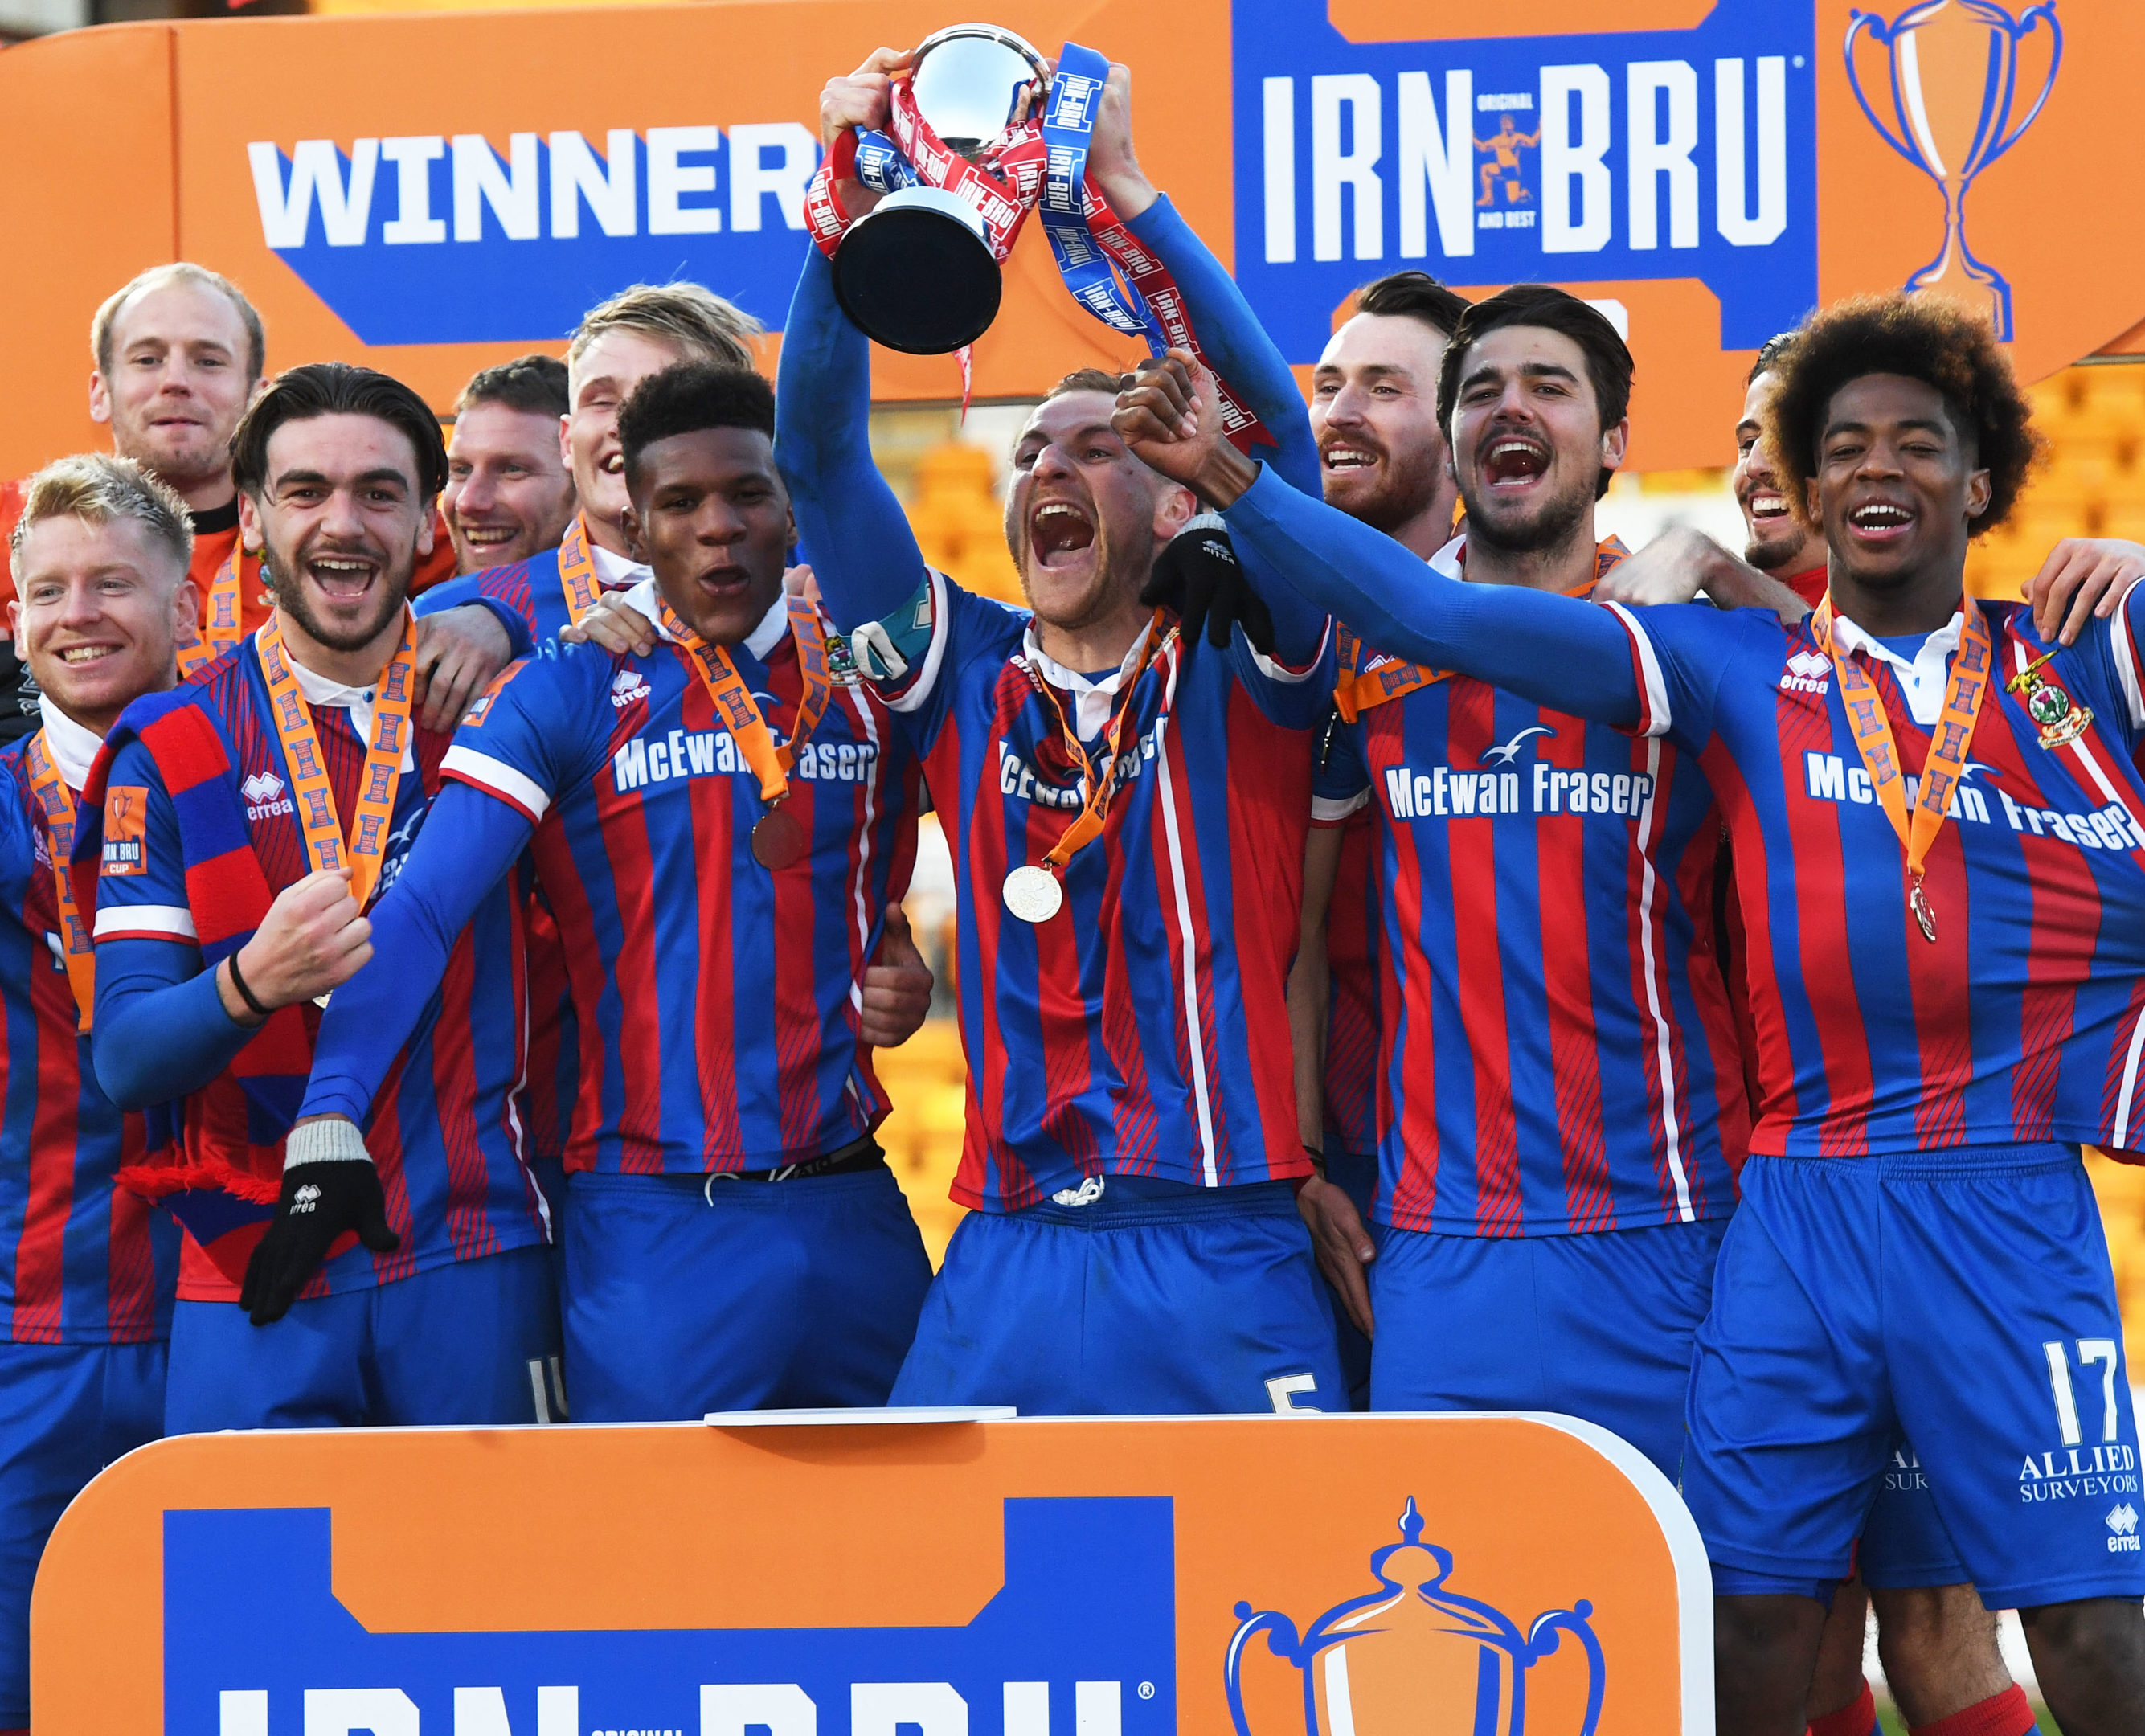 Inverness Caley Thistle won last season's competition.